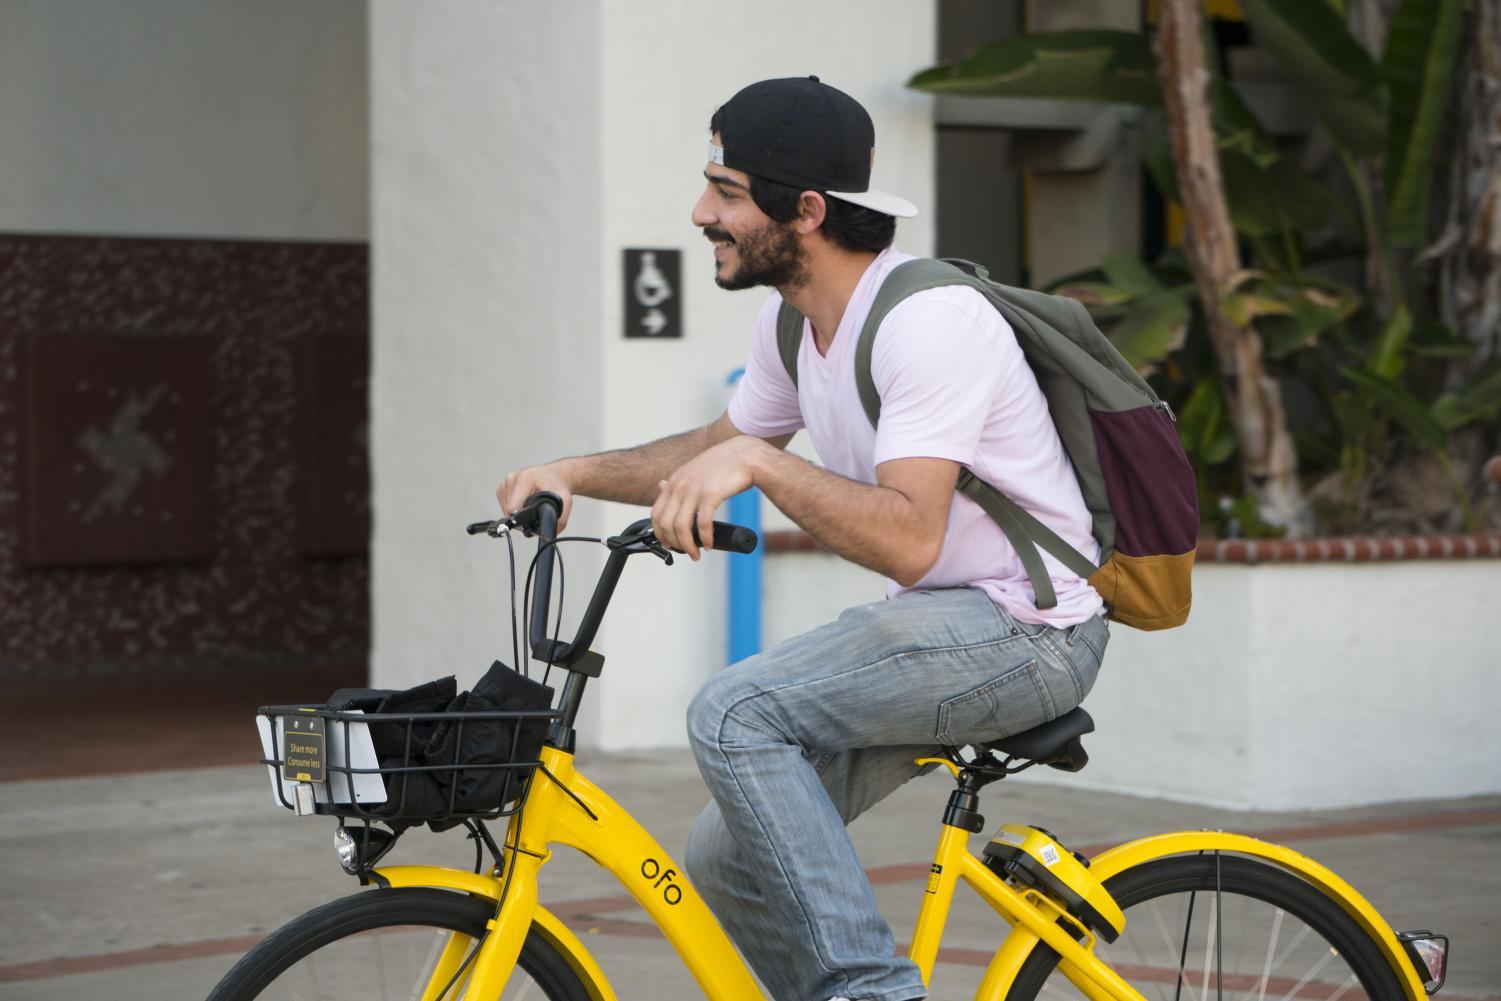 Electrical engineering junior Adam Jabbar rides an Ofo bike near Hepner Hall on April 10.